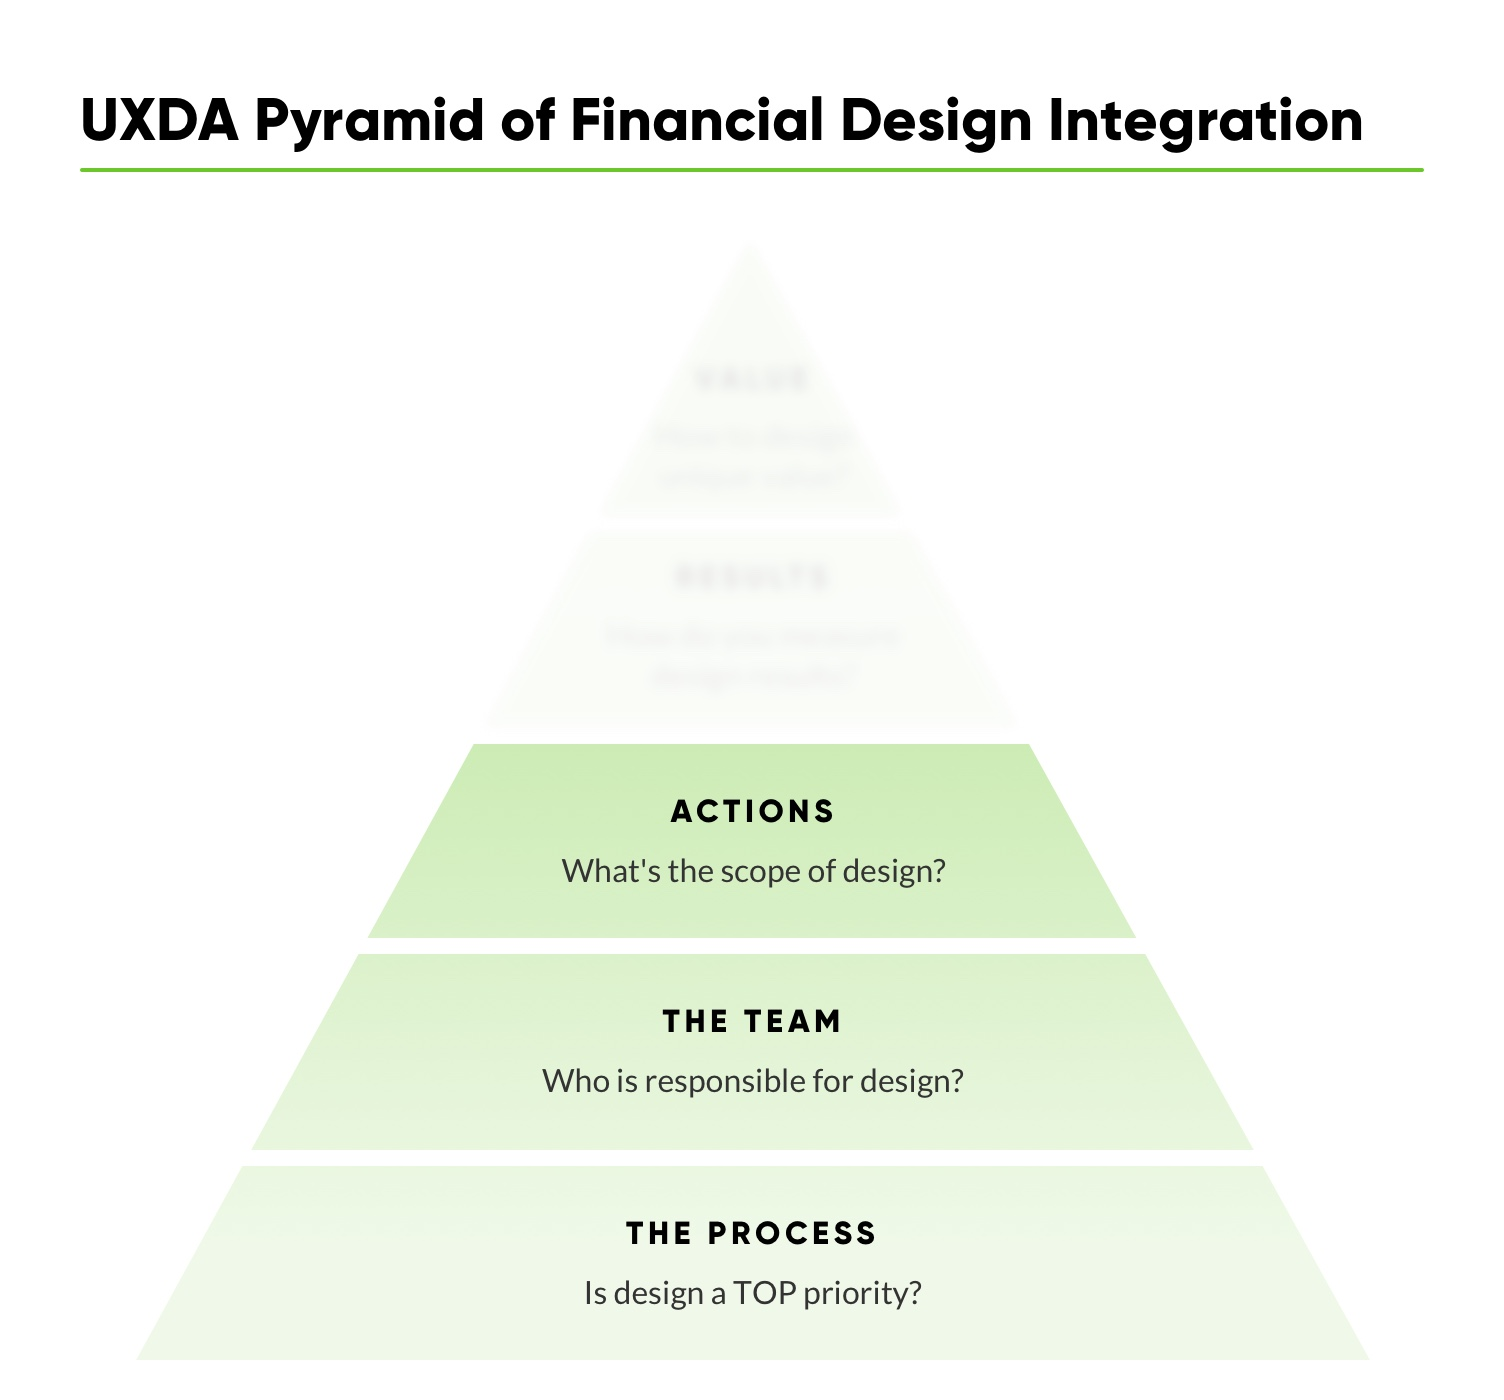 financial-ux-design-methodology-uxda-financial-design-integration-3-S.jpg